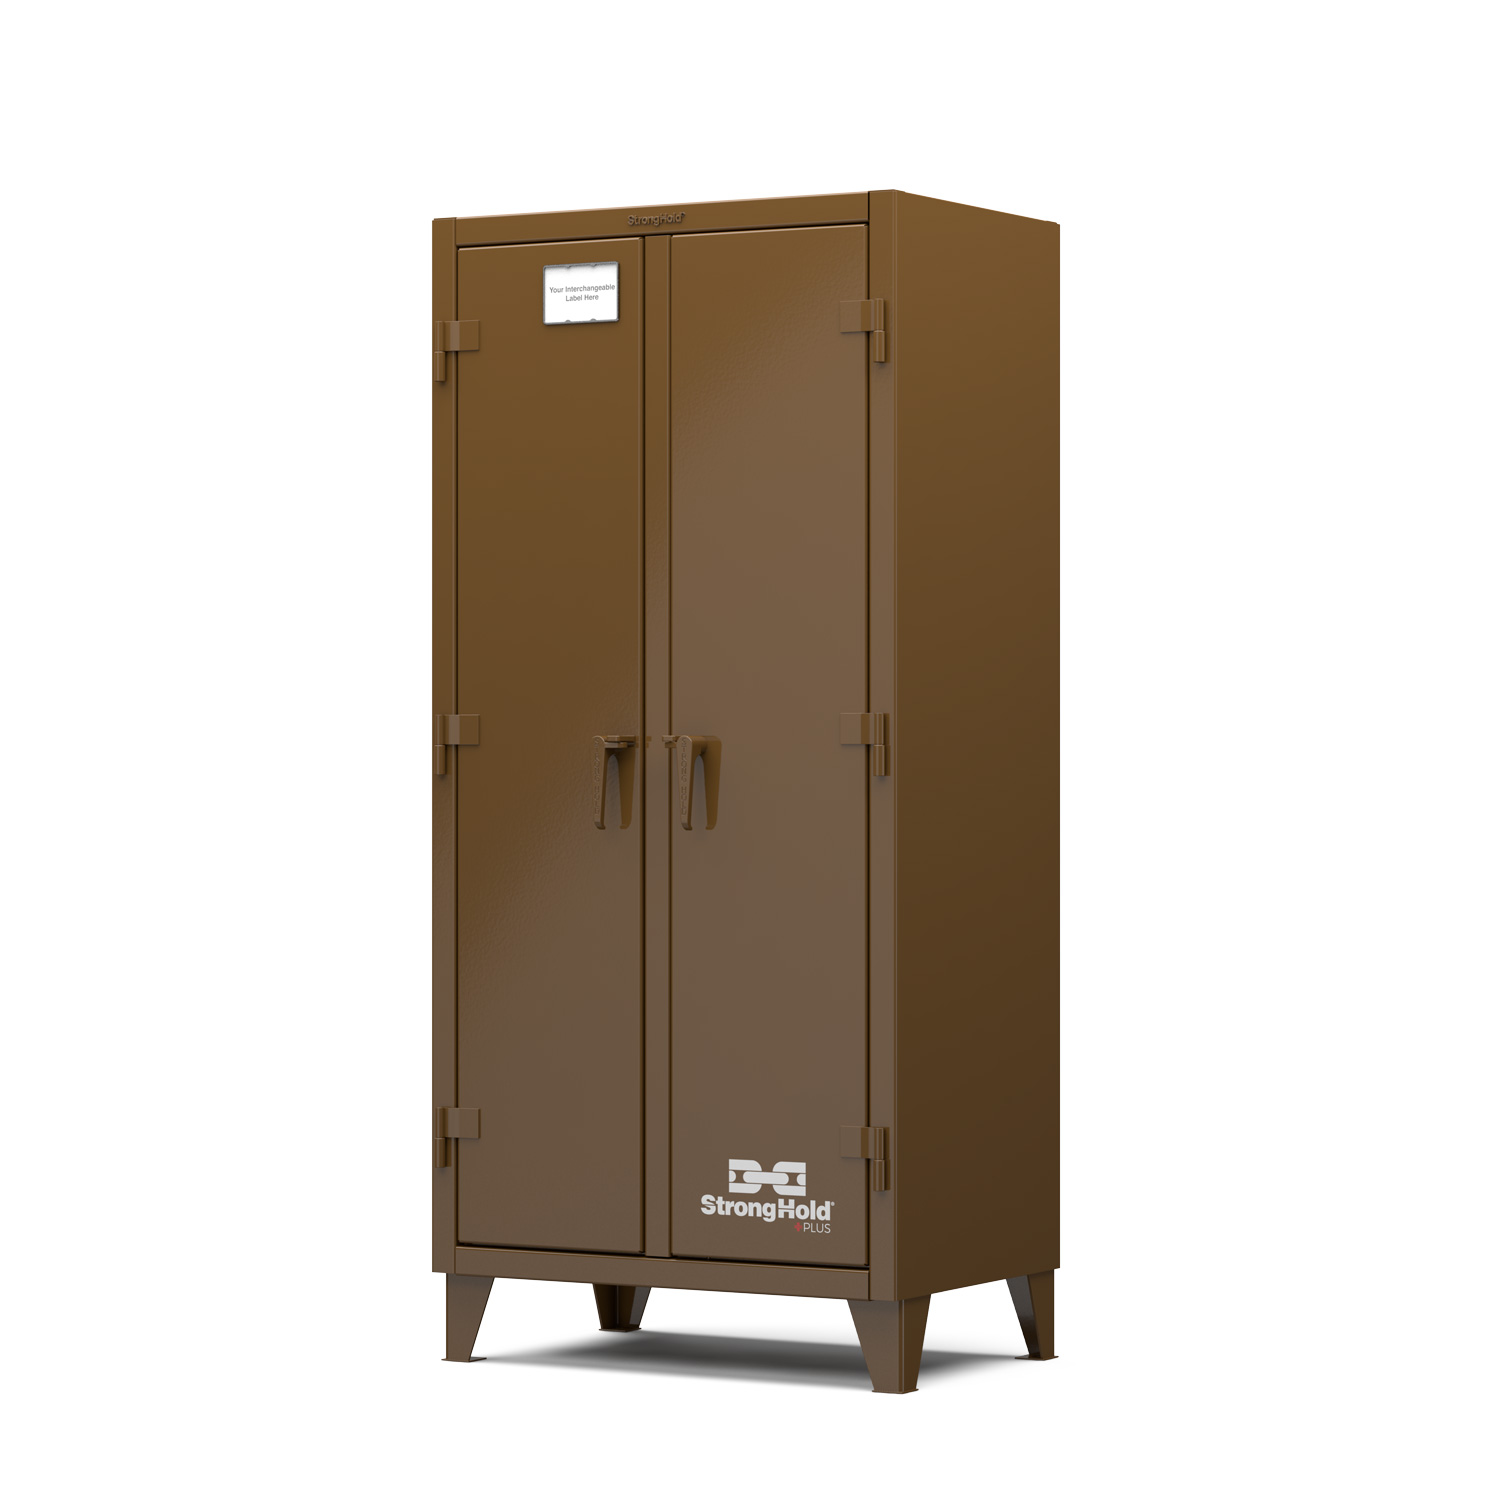 broom hold steel cabinets closet strong stainless cabinet